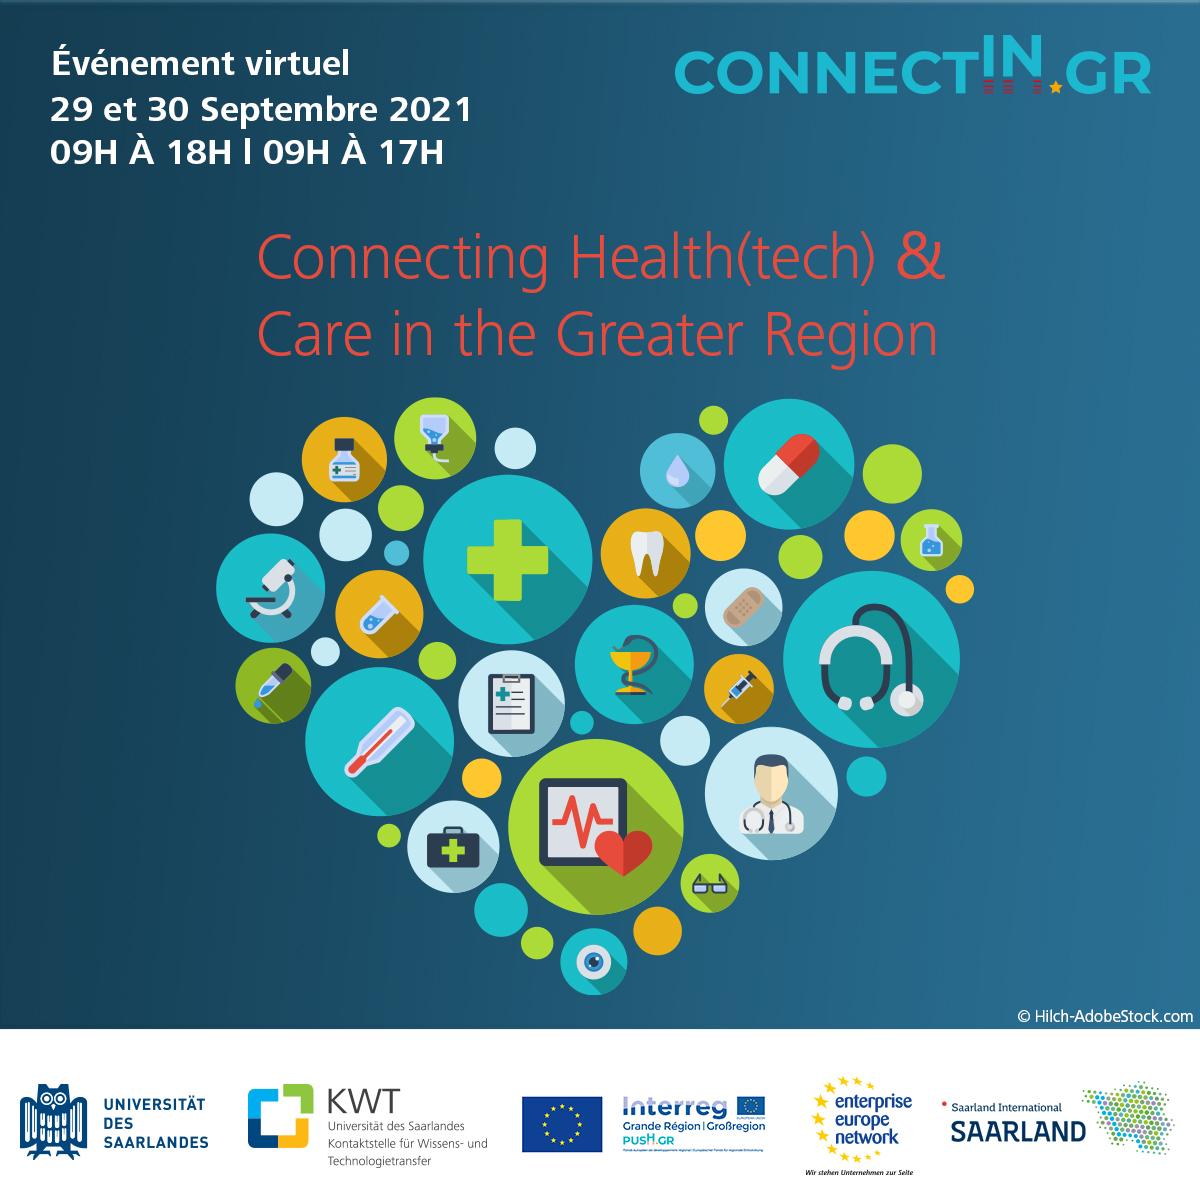 ConnectInGR - Connecting Health(tech) & Care in the Greater Region